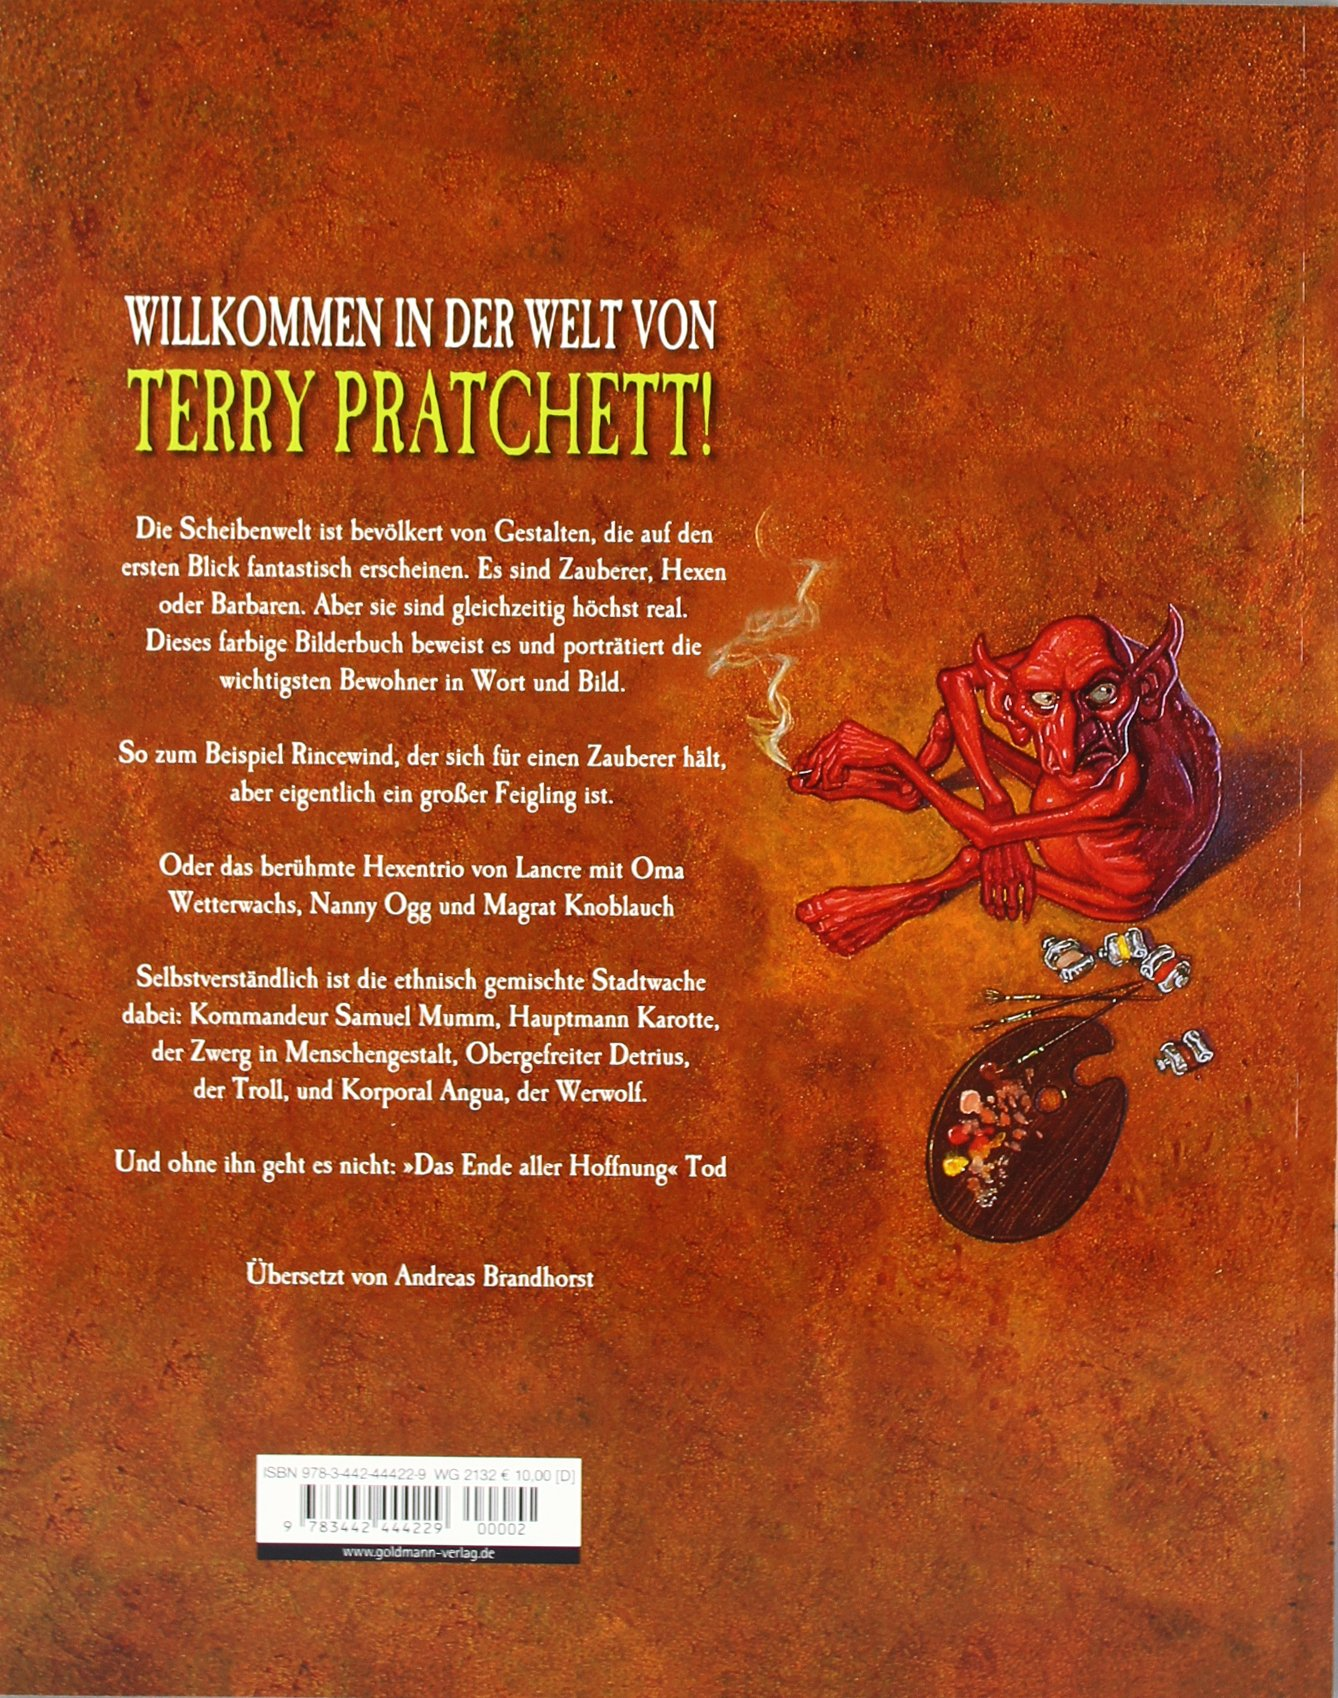 Das Scheibenwelt Album Terry Pratchett Paul Kidby 9783442444229 Amazon Books